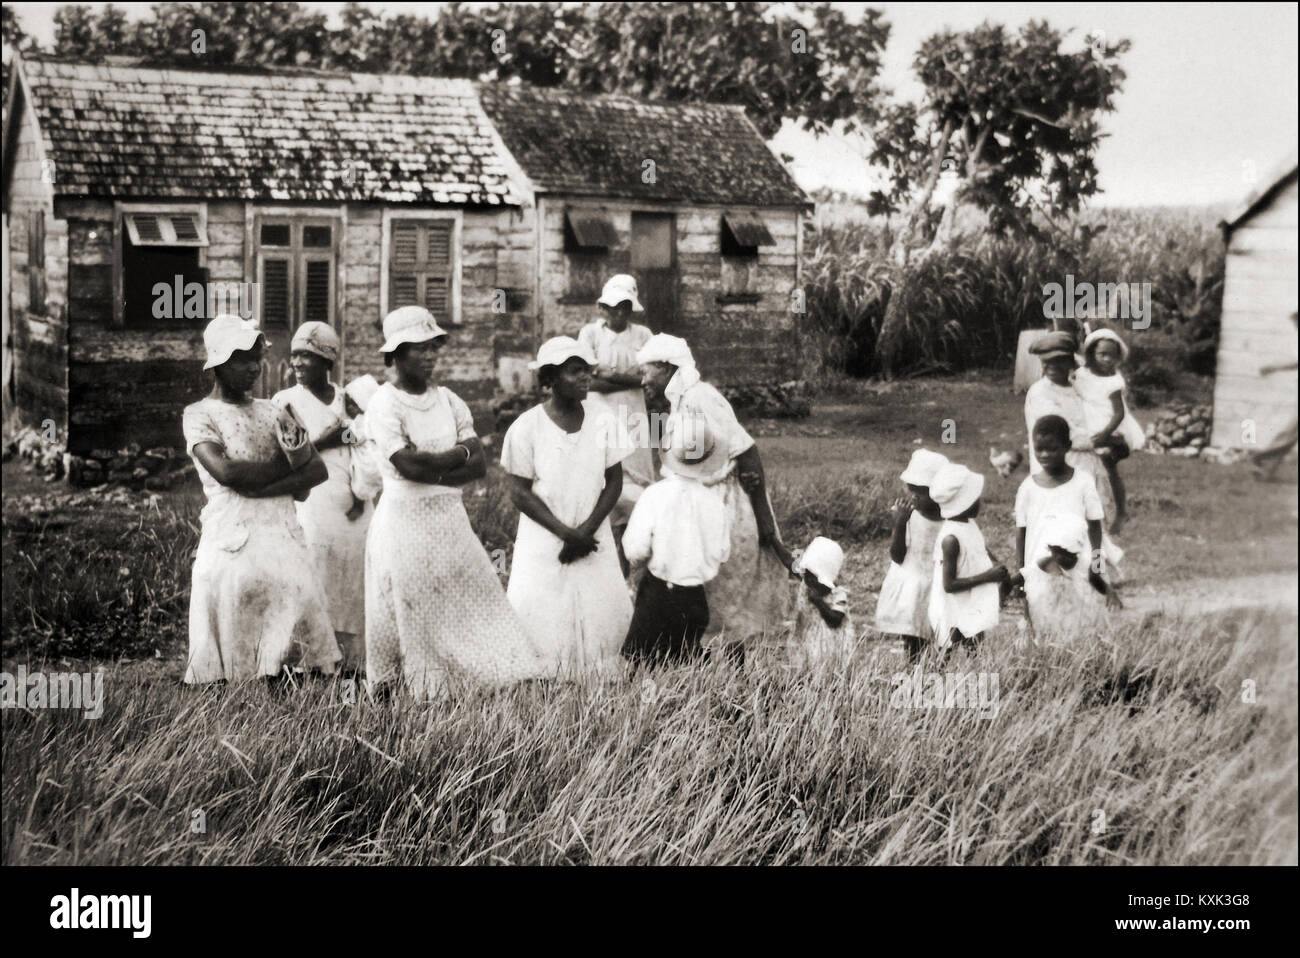 Plantation Workers - Stock Image